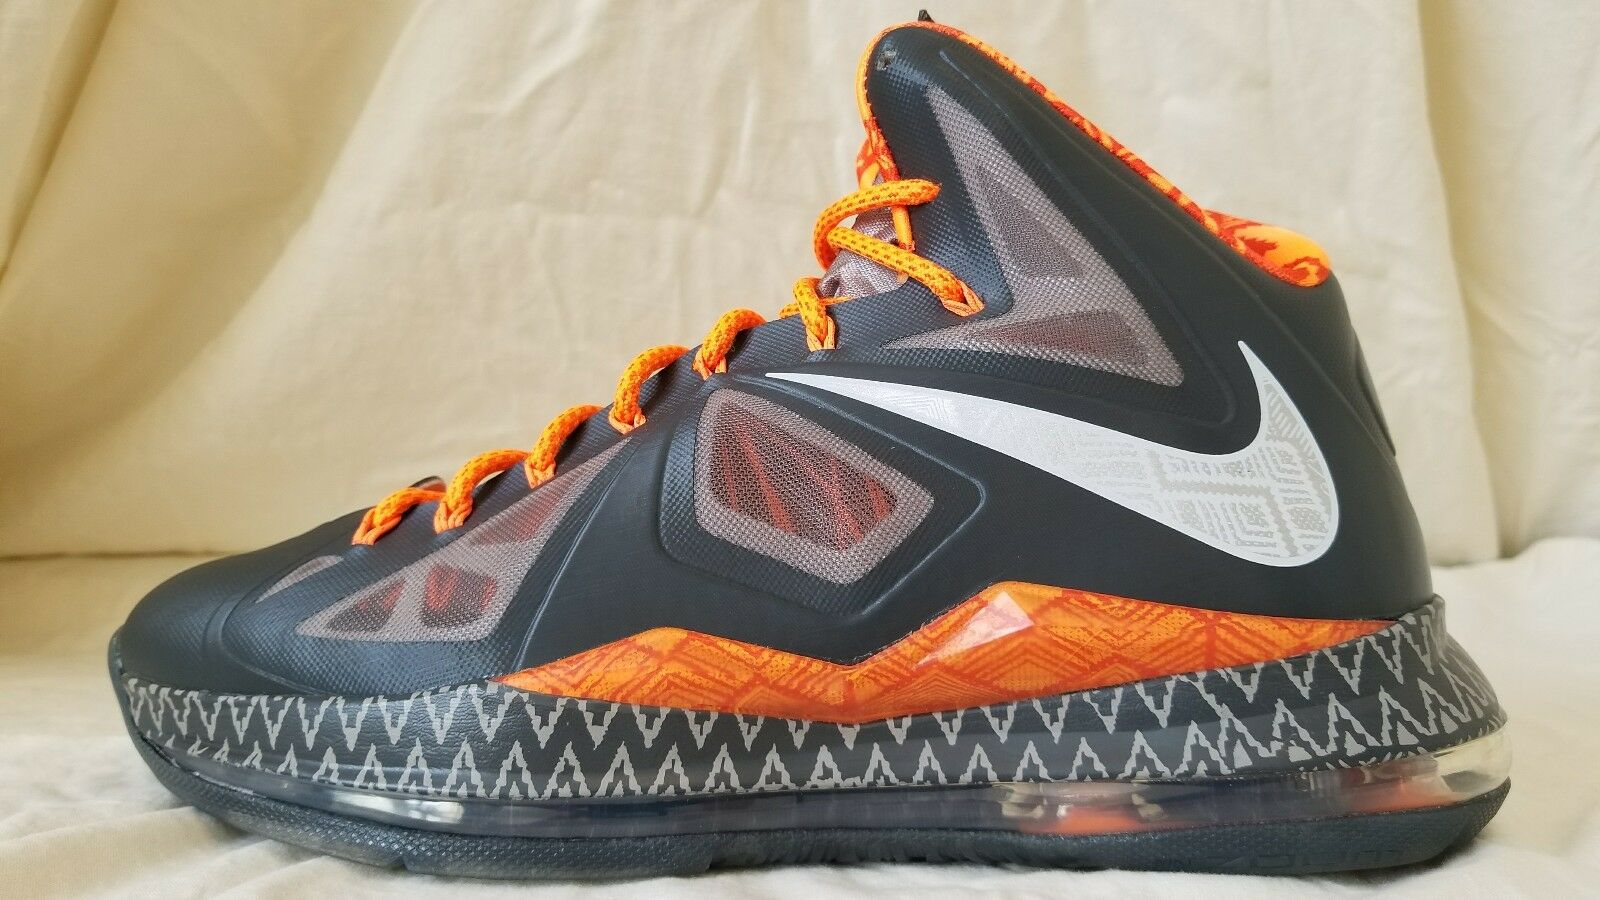 Nike Lebron James X BHM Black History Month Elite PS 583109-001 Comfortable Wild casual shoes